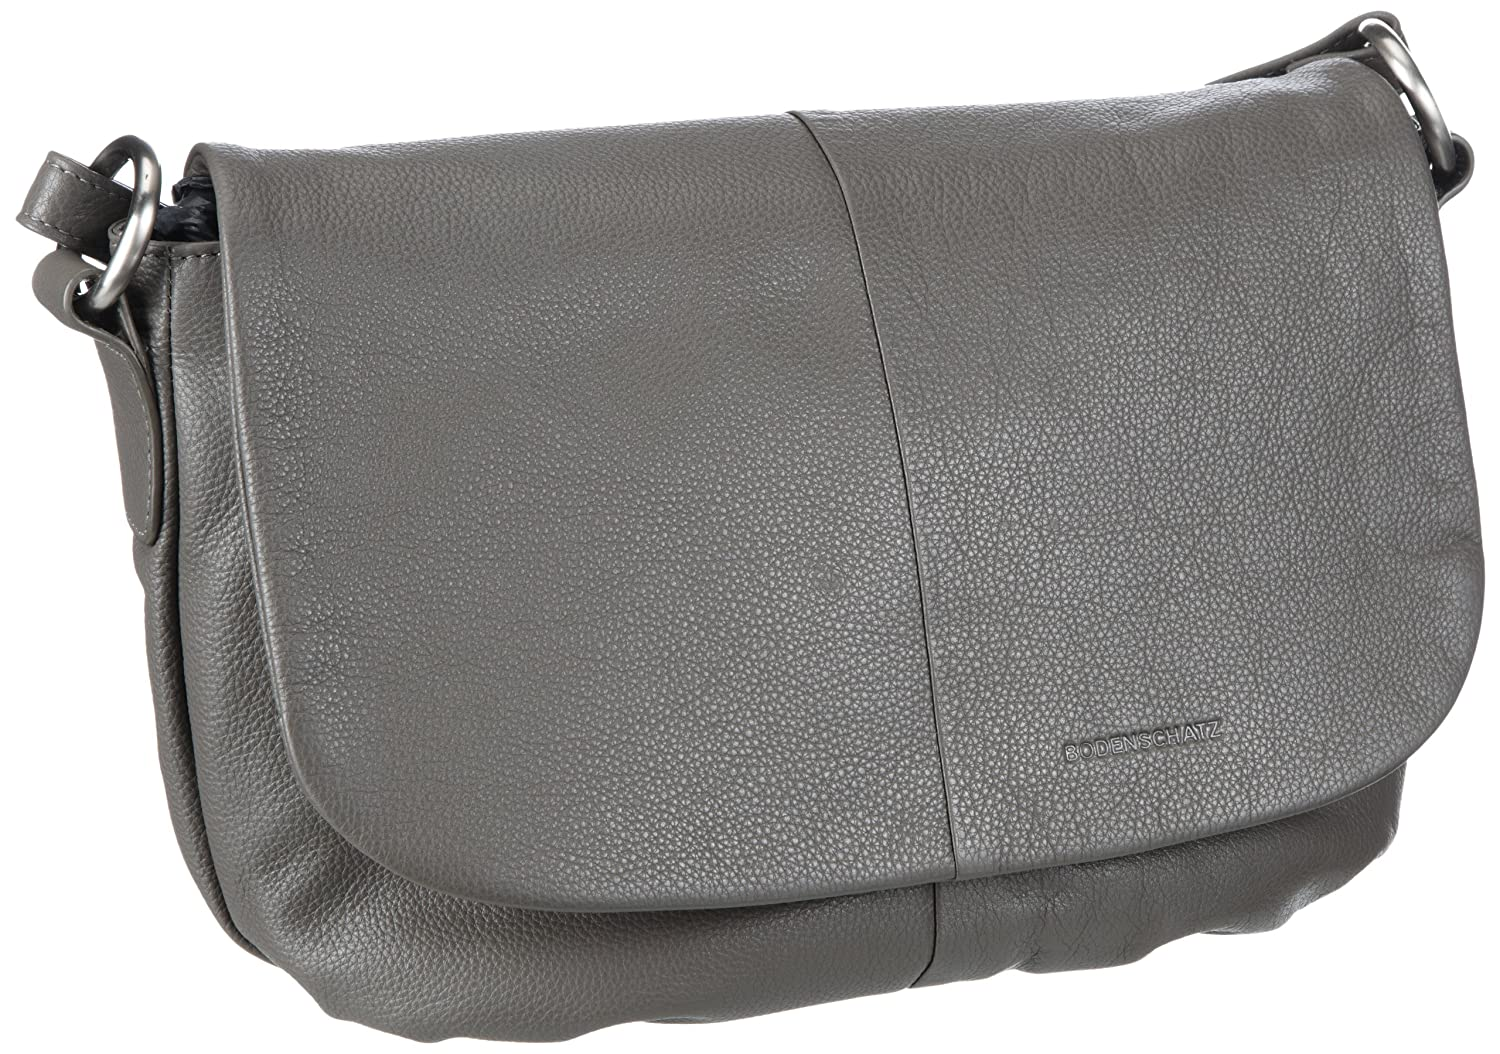 Bodenschatz Women Savona Cross-Body Bag цена